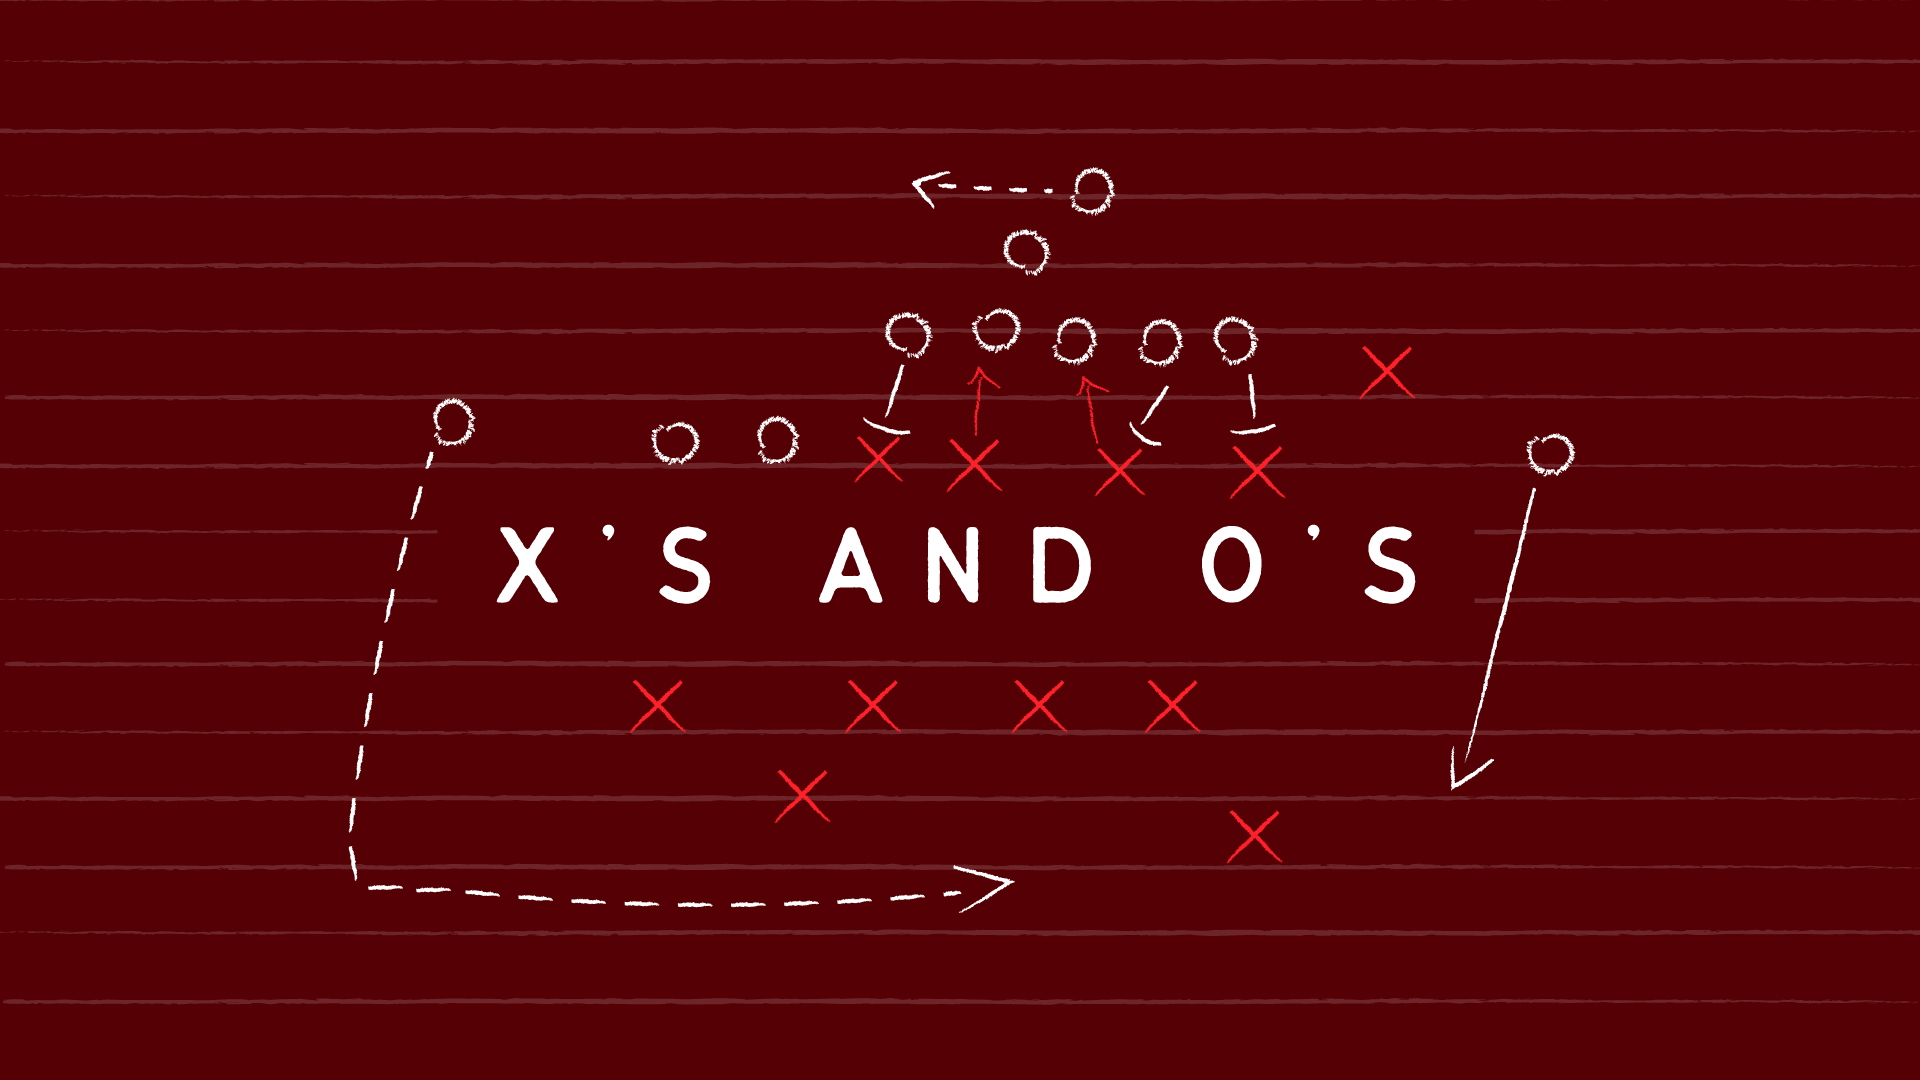 X'sandO's_Graphics_Side Screens_1920x1080.png